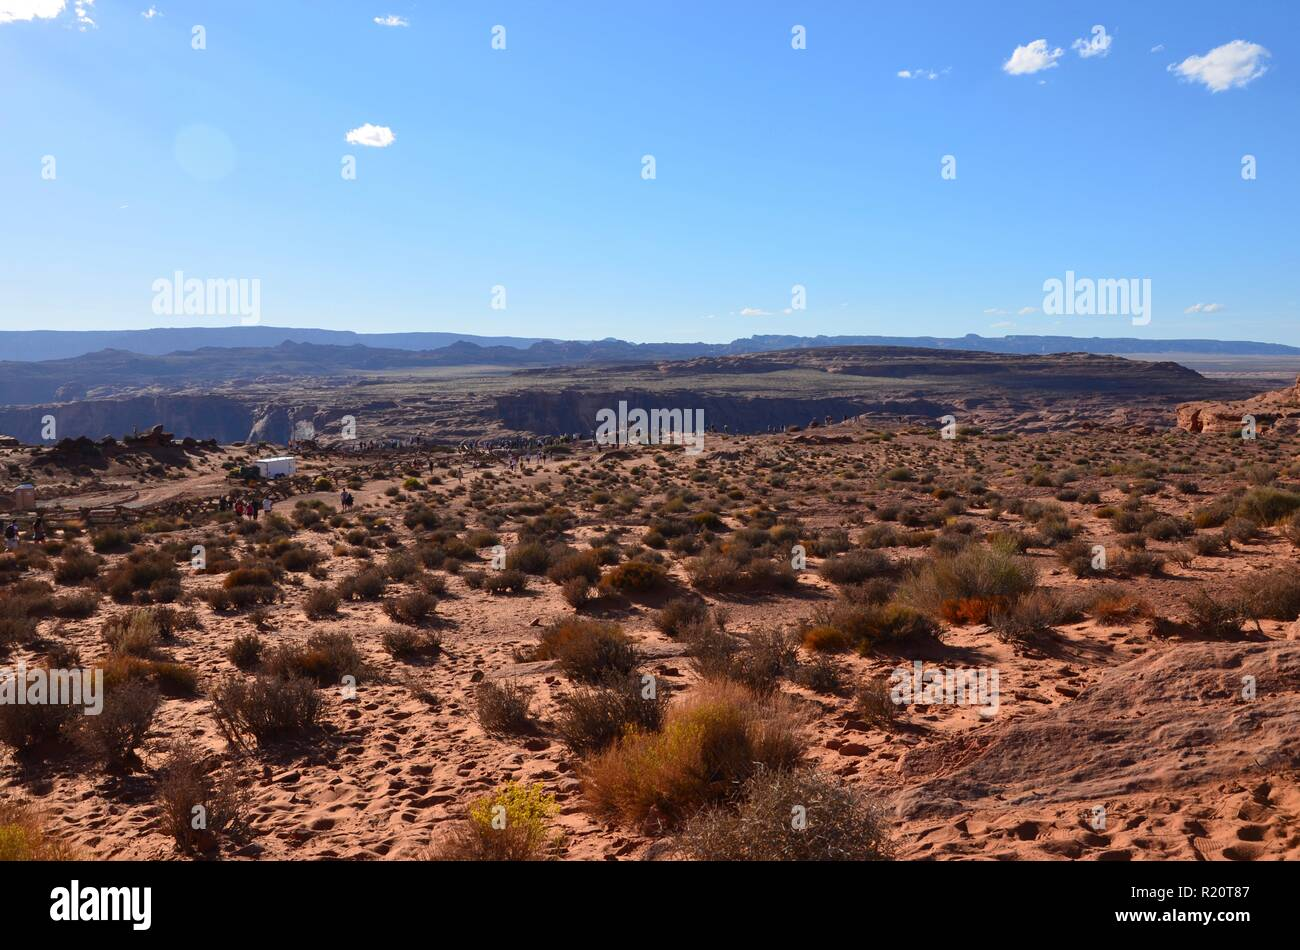 Horseshoe Bend near the town of Page in Arizona, people are walking to the outlook area, September, blue sky, sunny, desert landscape, landmark - Stock Image